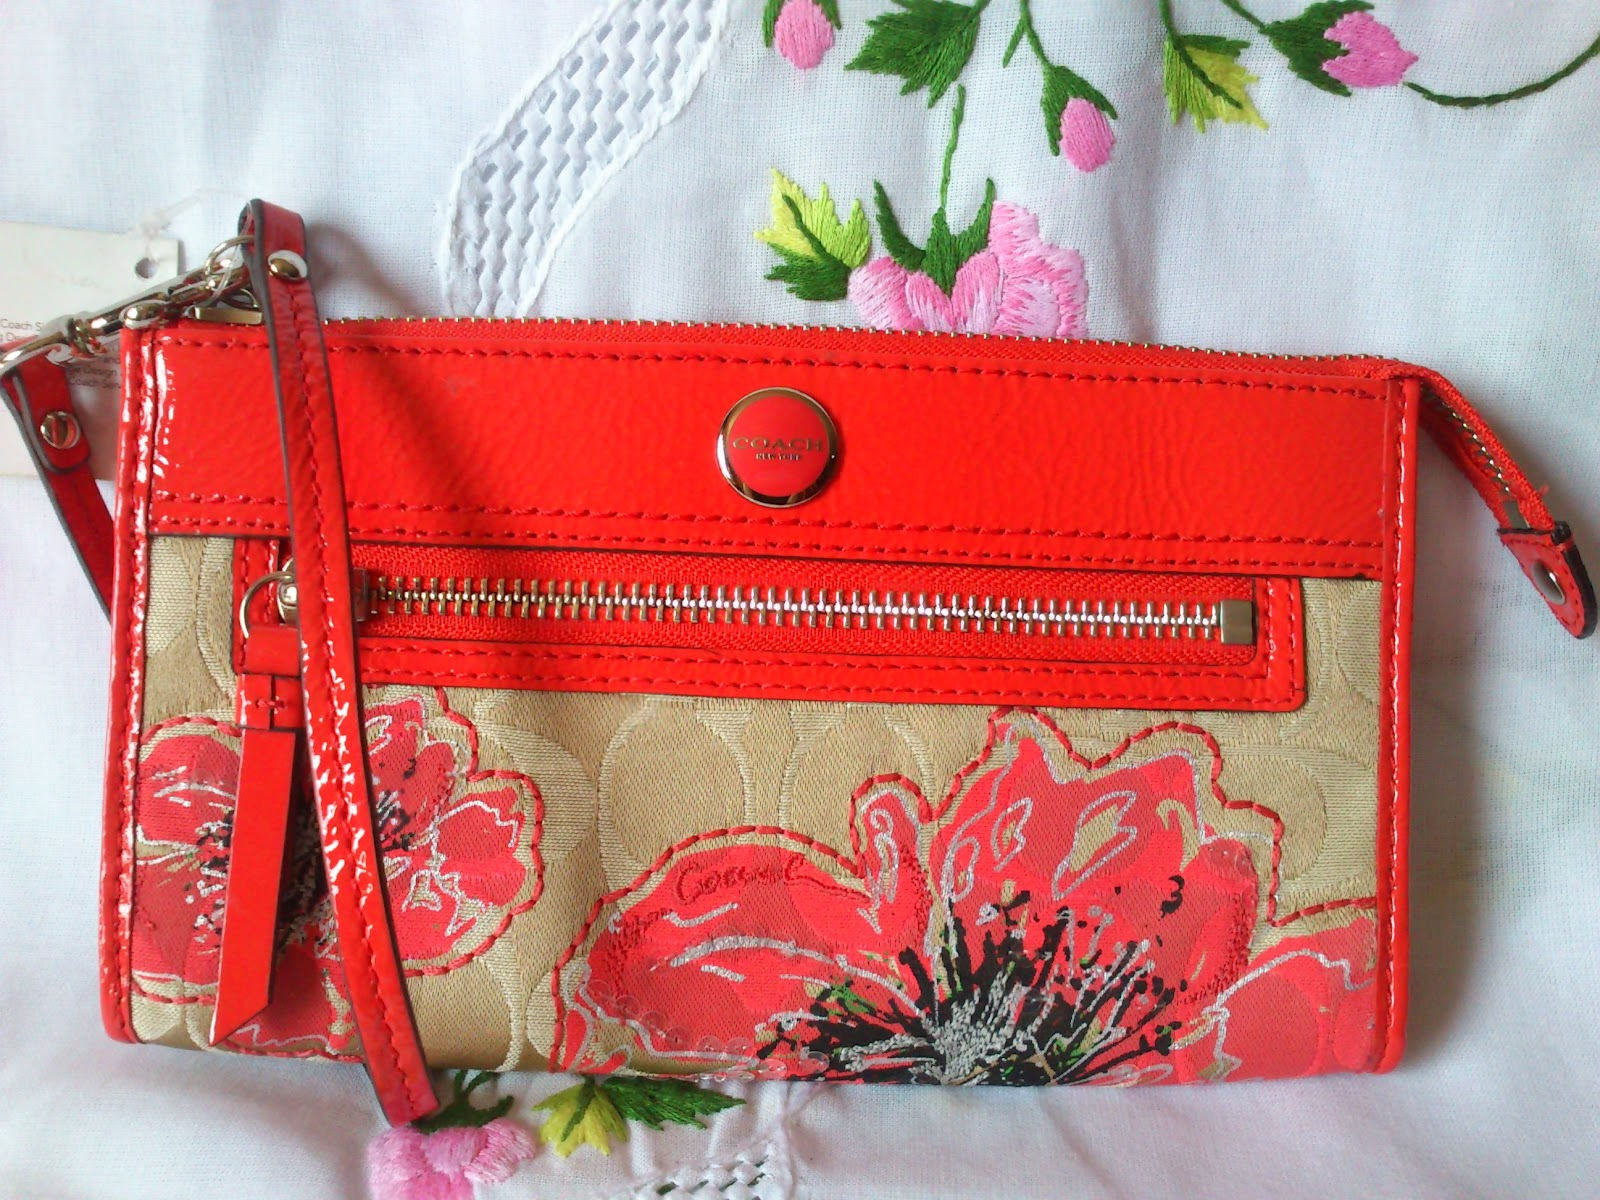 Branded item for less coach poppy signature flower zippy wallet 47070 coach poppy signature flower zippy wallet 47070 mightylinksfo